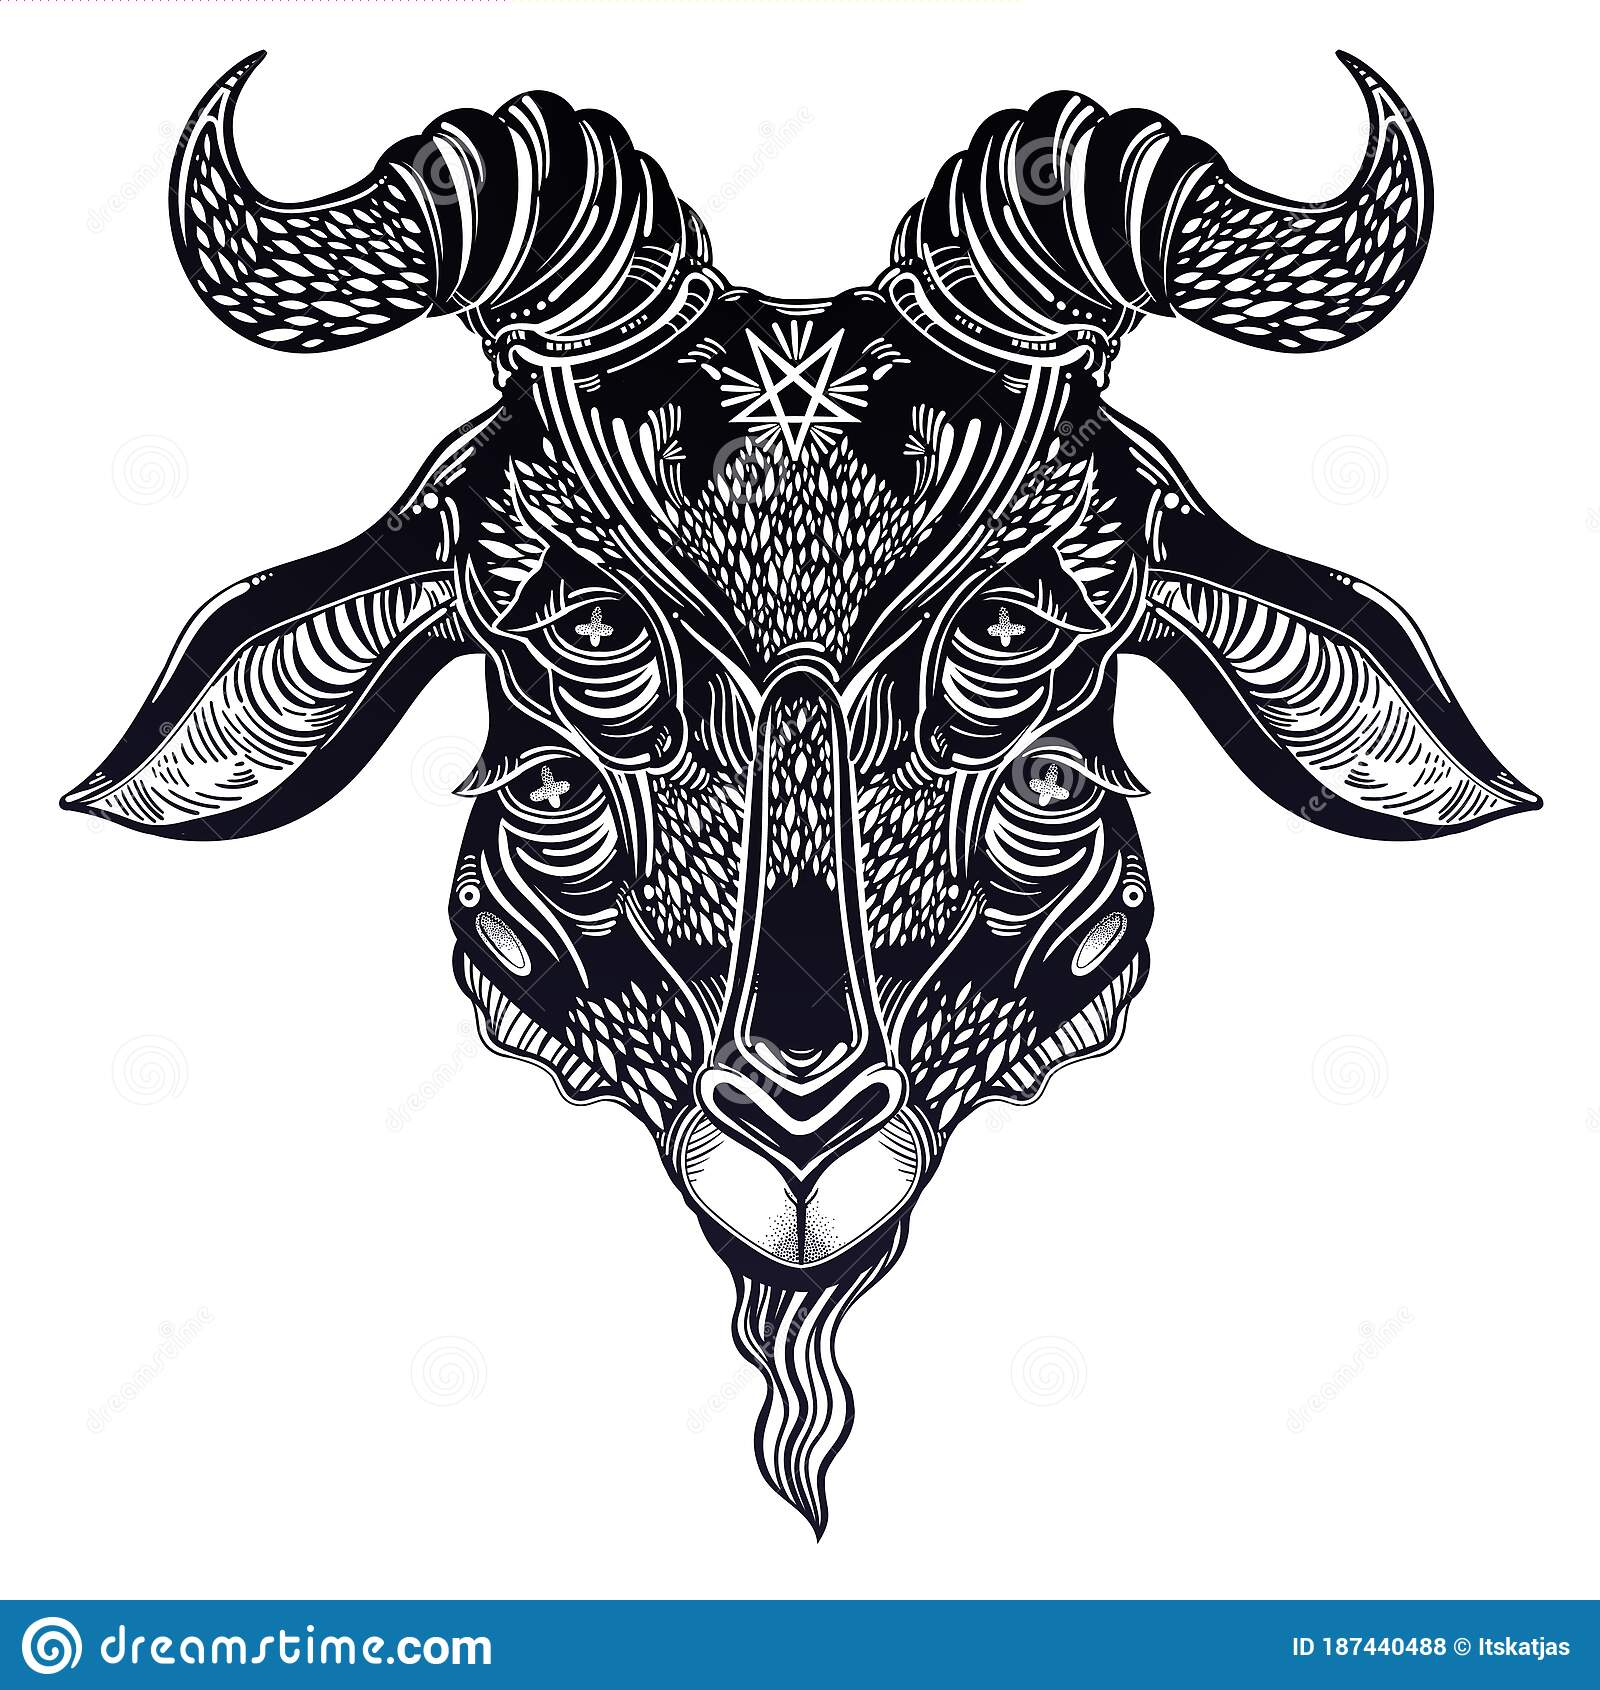 Pentagram In The Head Of Demon Baphomet With Four Eyes Stock Vector Illustration Of Element Paganism 187440488